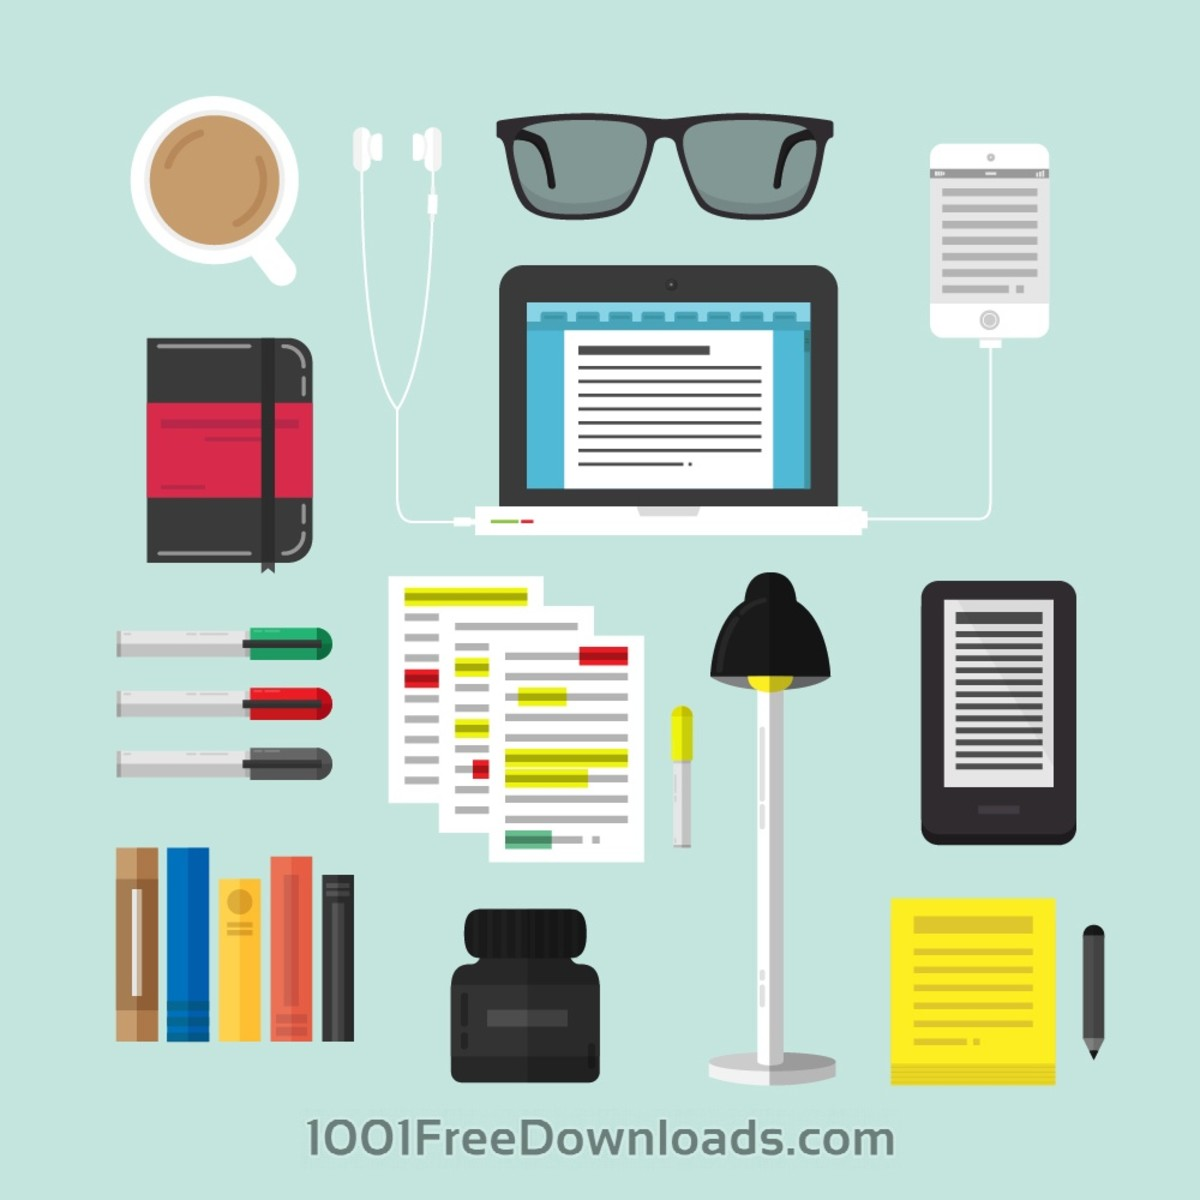 14 Must-Have Tools For Freelance Writers